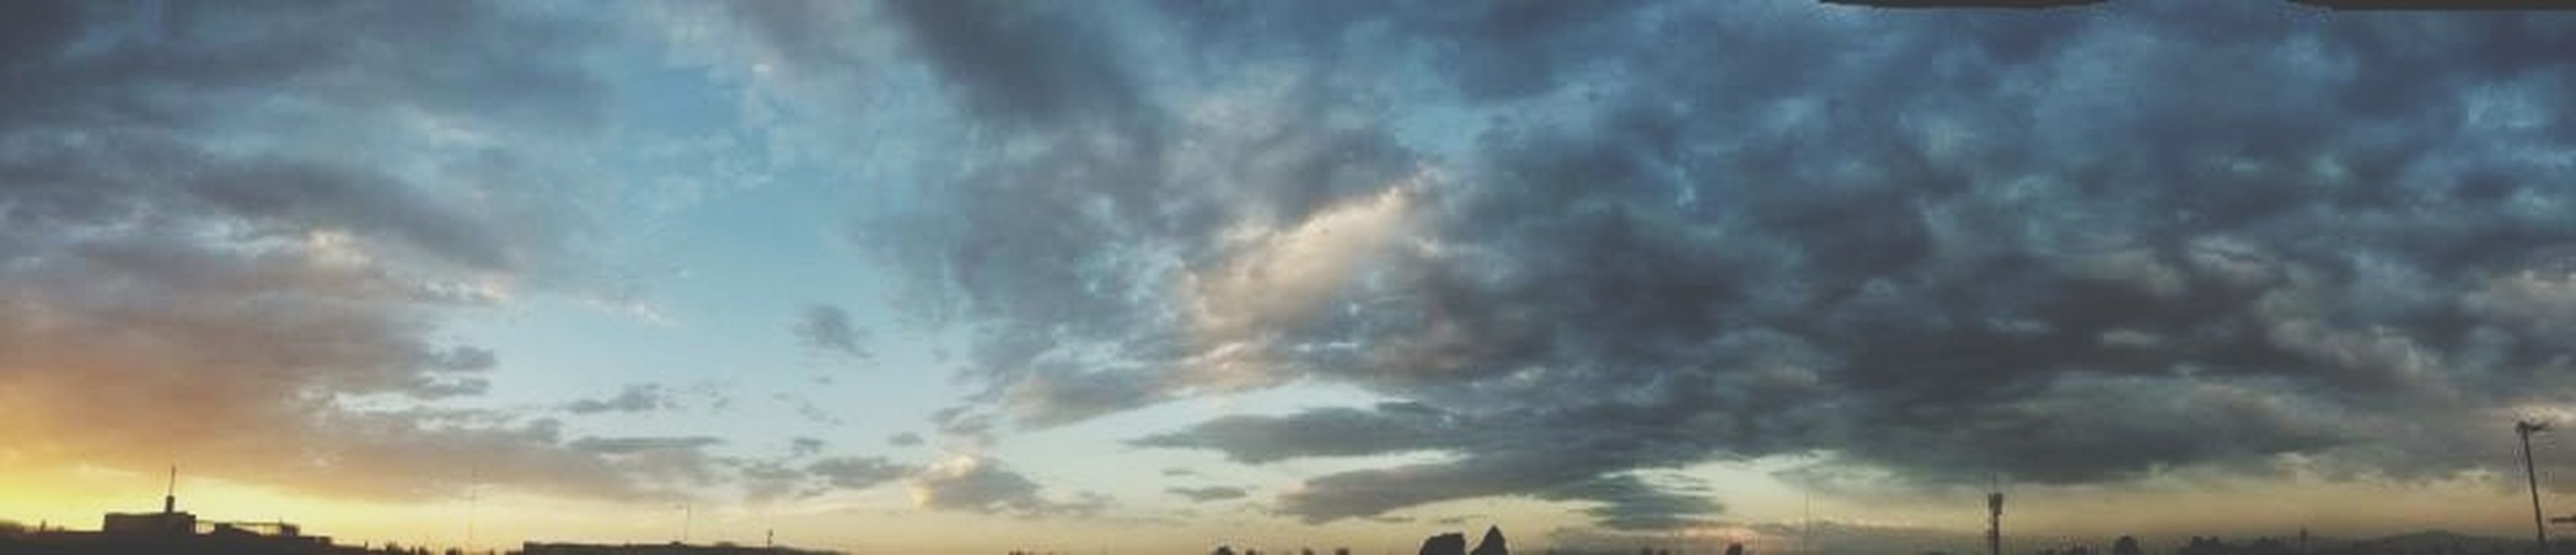 sky, cloud - sky, cloudy, sunset, silhouette, weather, beauty in nature, scenics, cloud, tranquility, nature, low angle view, dramatic sky, overcast, tranquil scene, building exterior, cloudscape, dusk, storm cloud, built structure